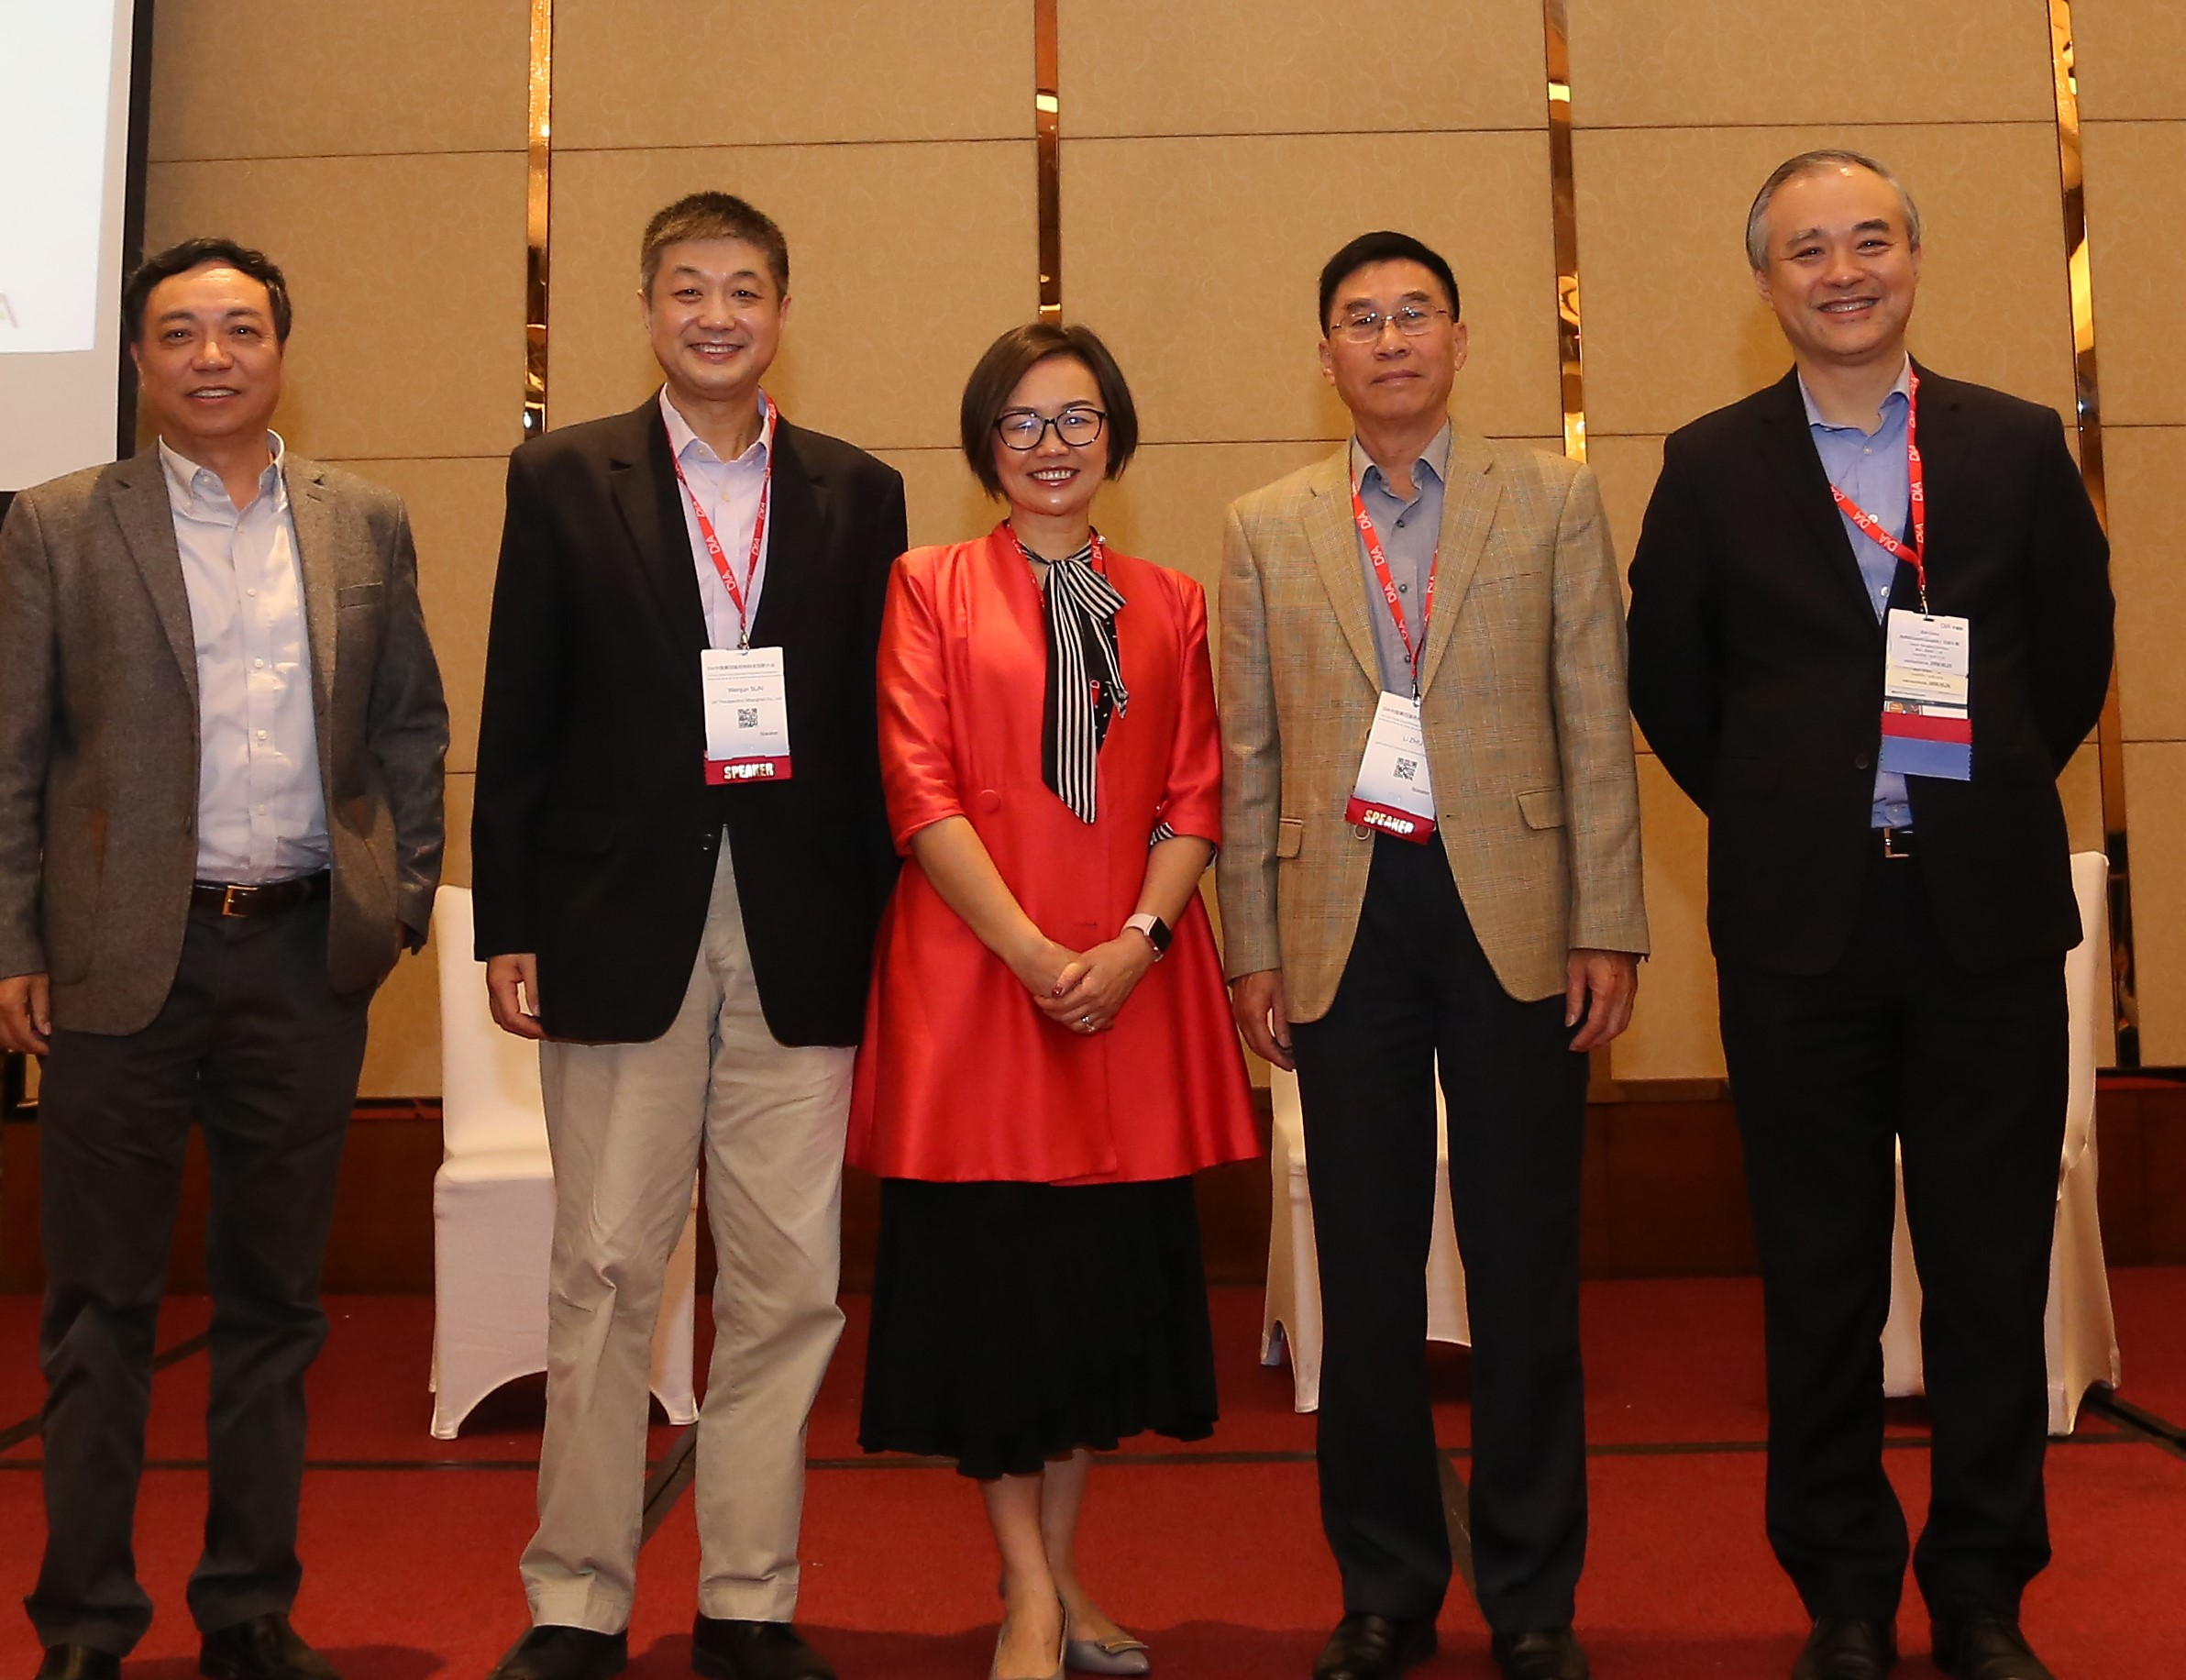 DIA panel on CAR-T in China, held in Suzhou Oct. 26, 2018